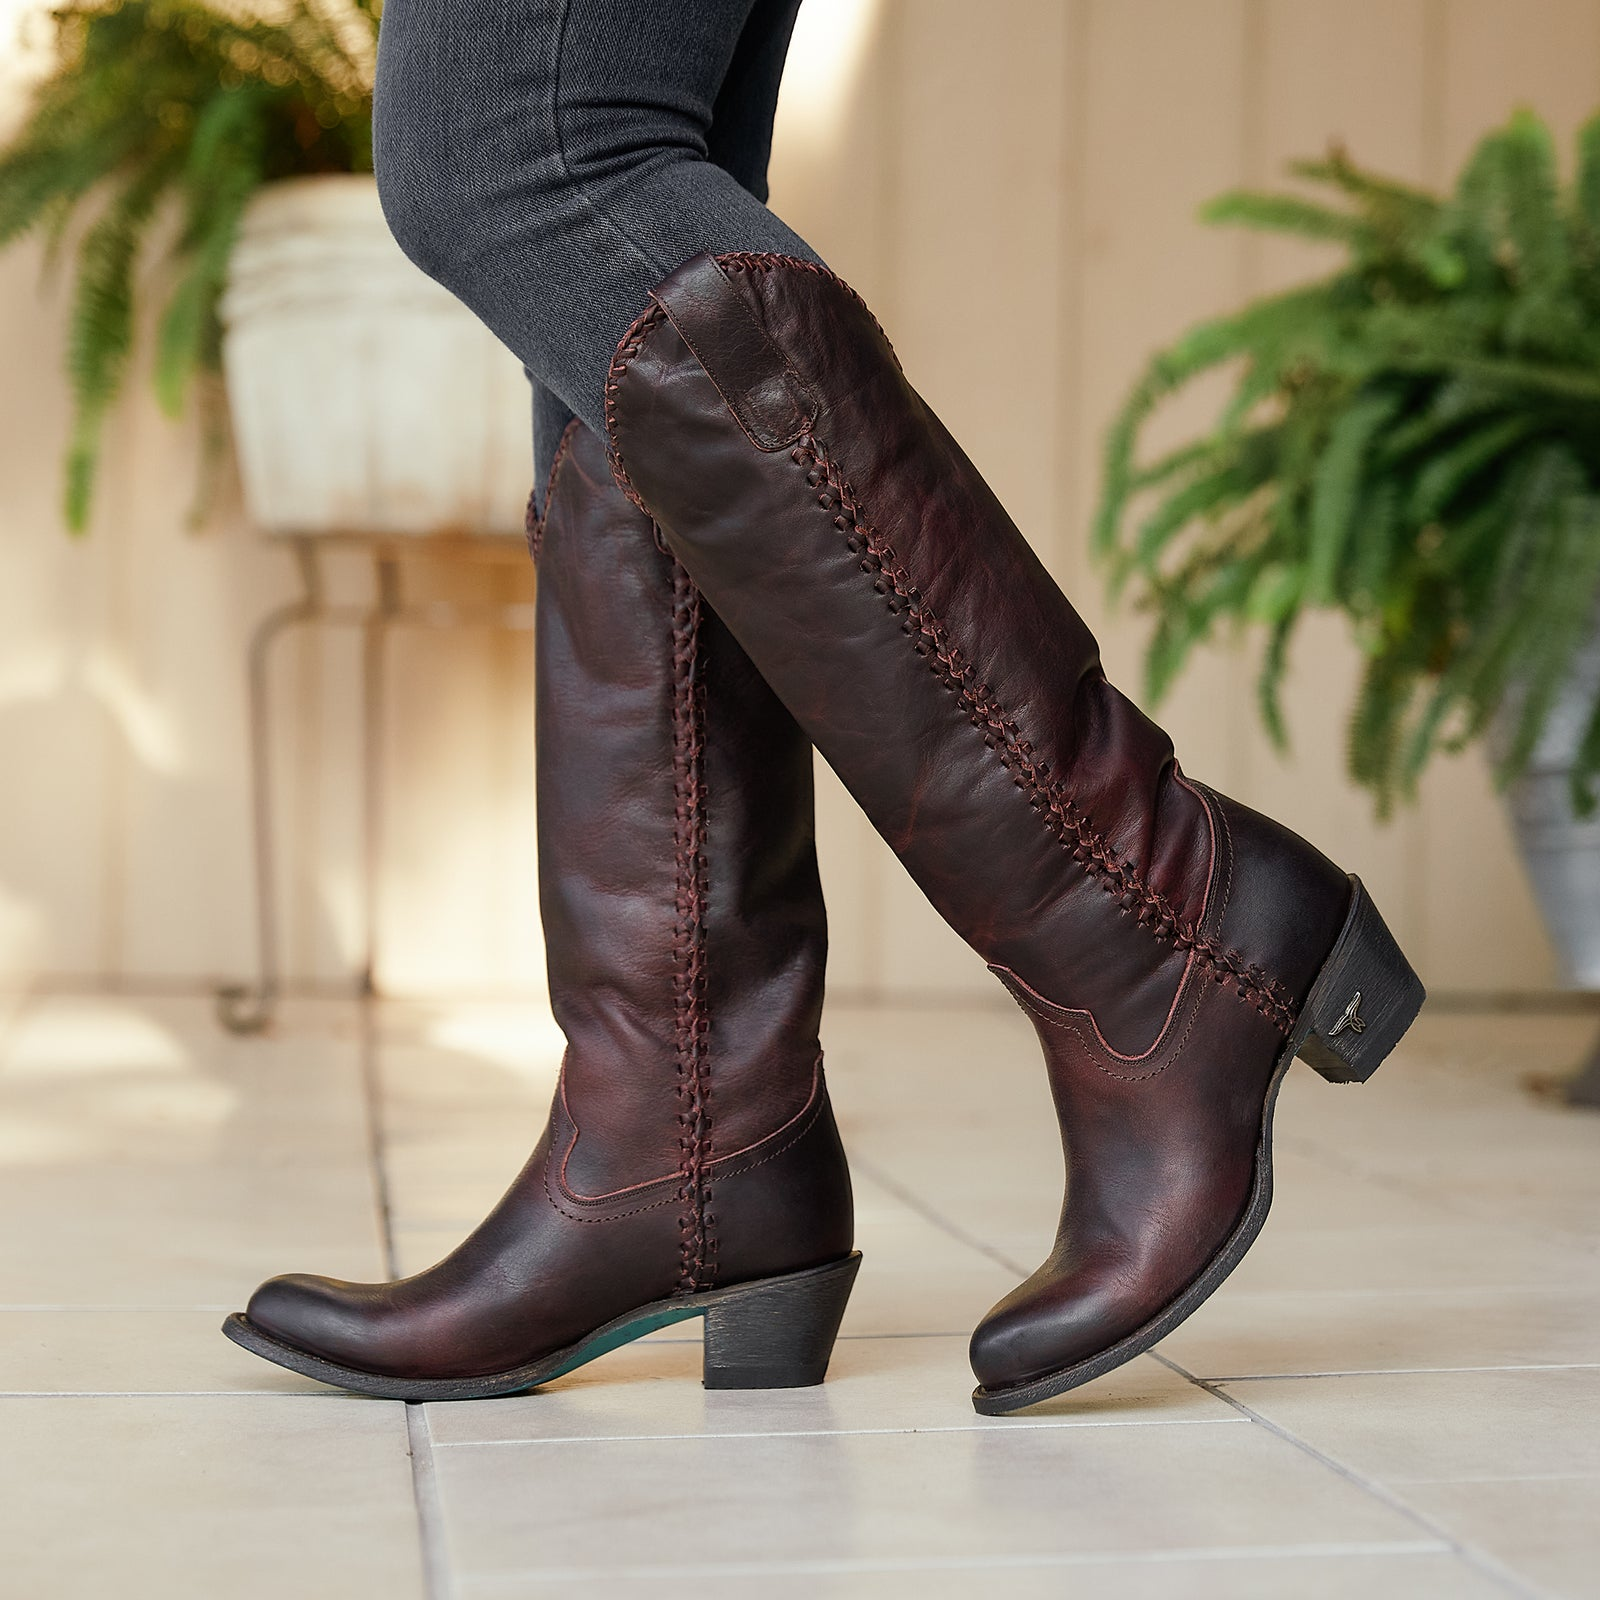 Shop for Womens Leather Boots Footwear